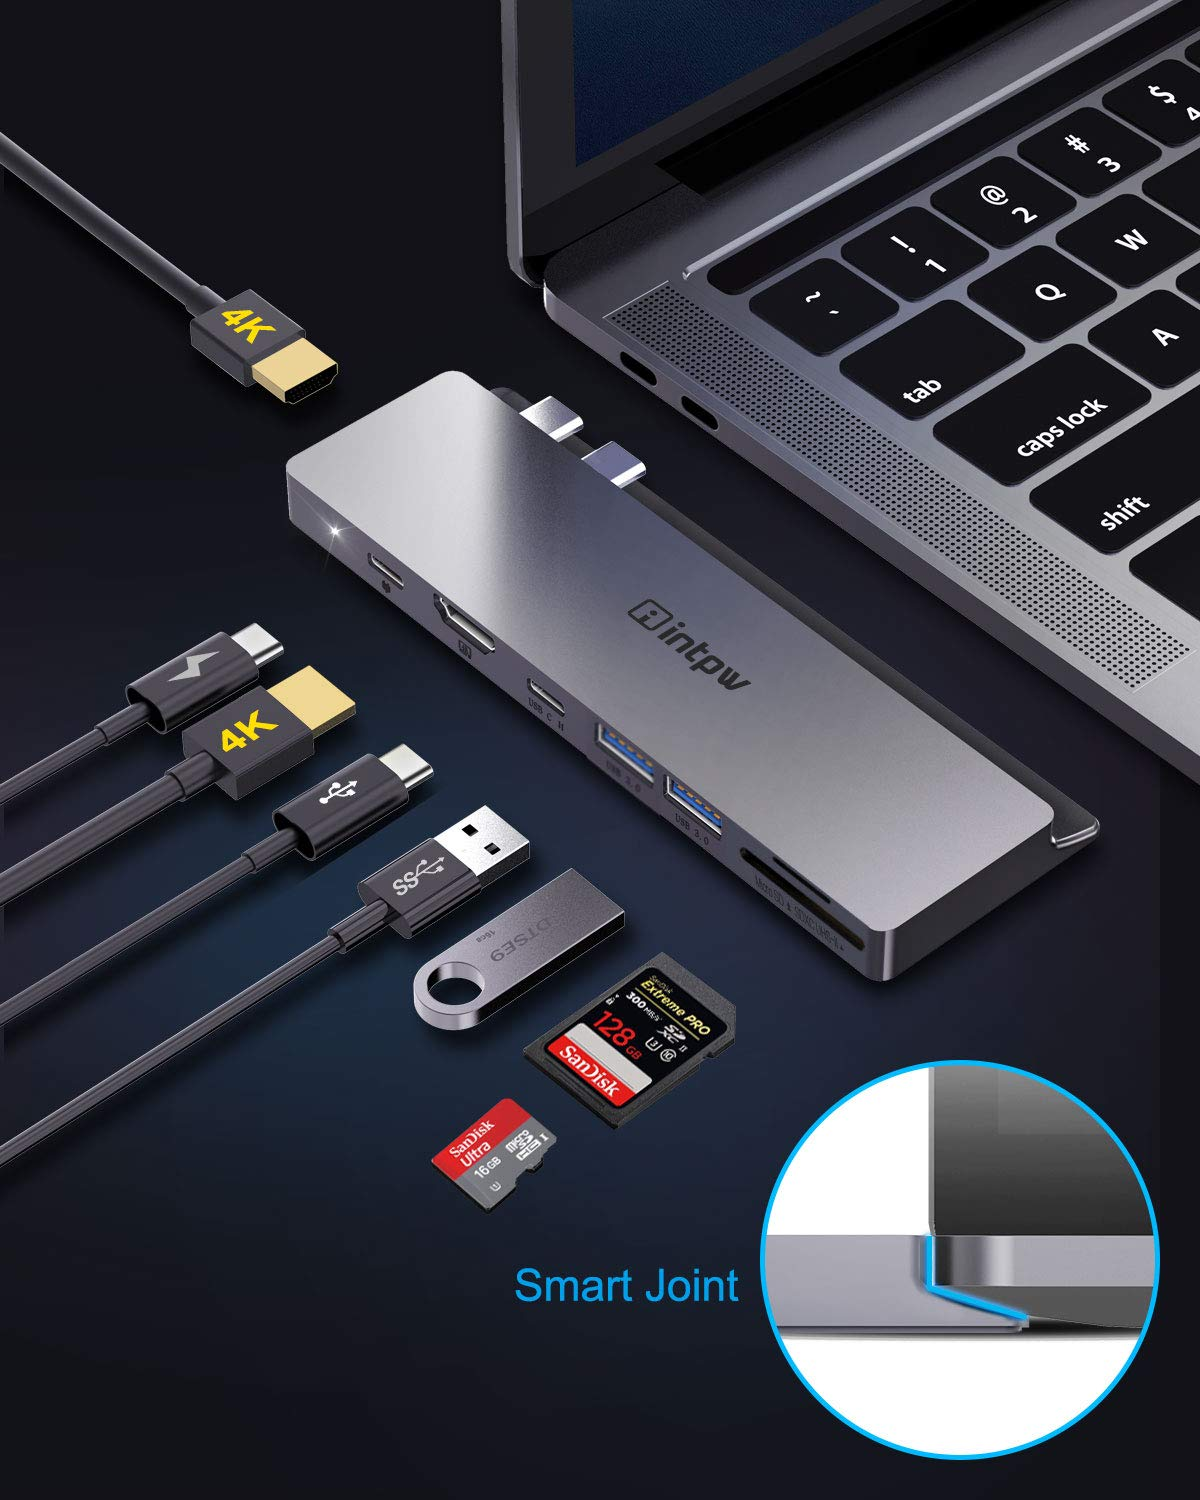 USB C Dock Hub Adapter 8 in 1 Thunderbolt 3 Dock w//UHS-II SD Card Reader INTPW Updated USB C Docking Station with Dual 4k HDMI for MacBook Pro MacBook Air 2019 2018 3 USB 3.0 Ports 87W USB-C PD